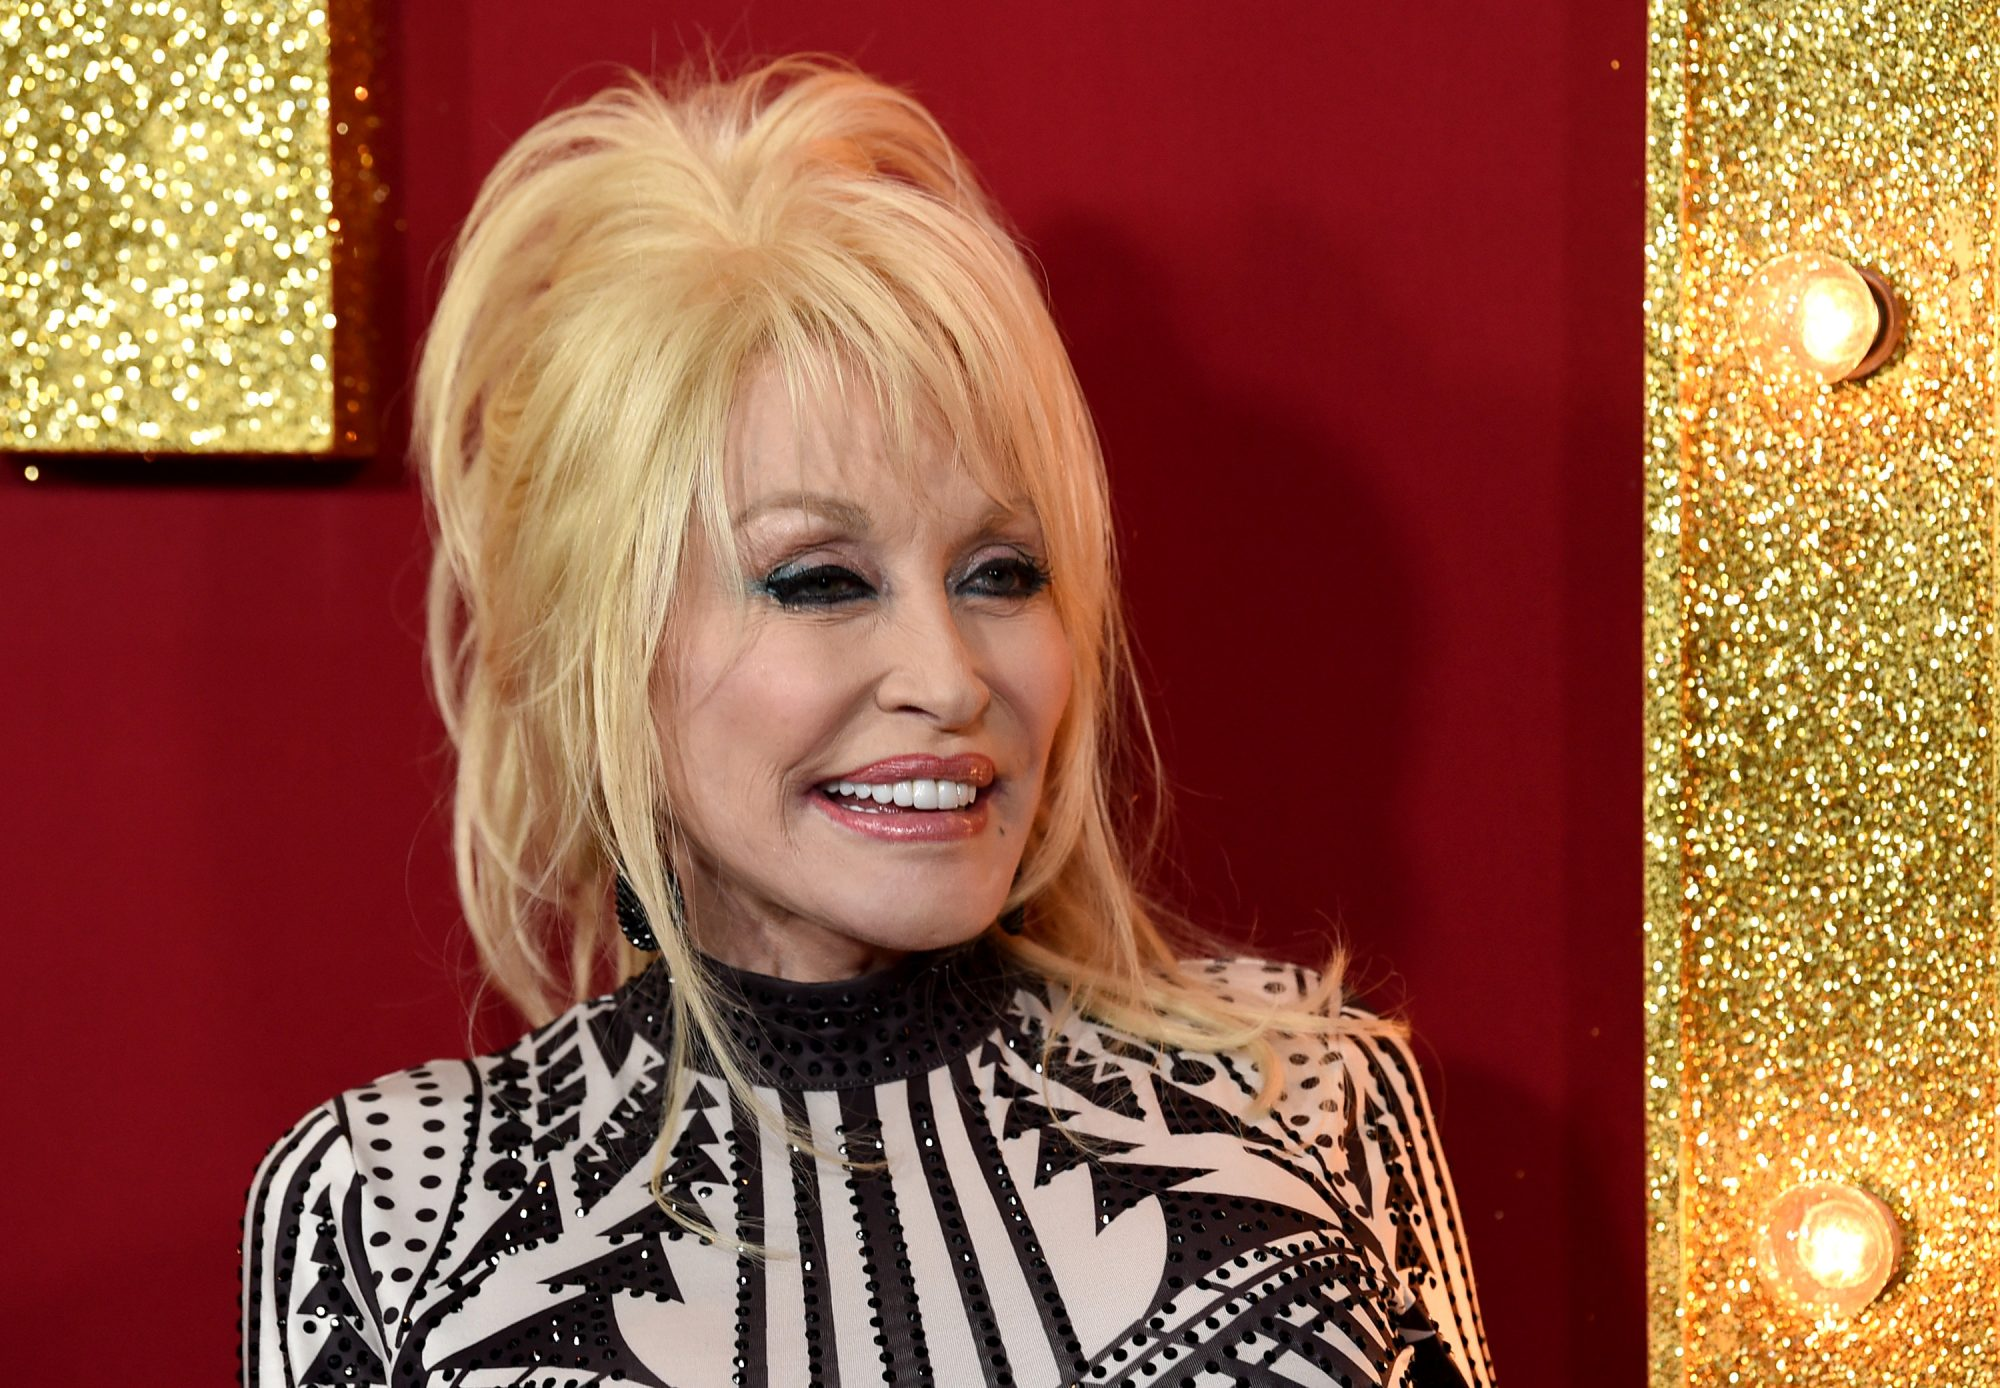 Dolly Parton at the Dumplin Premiere